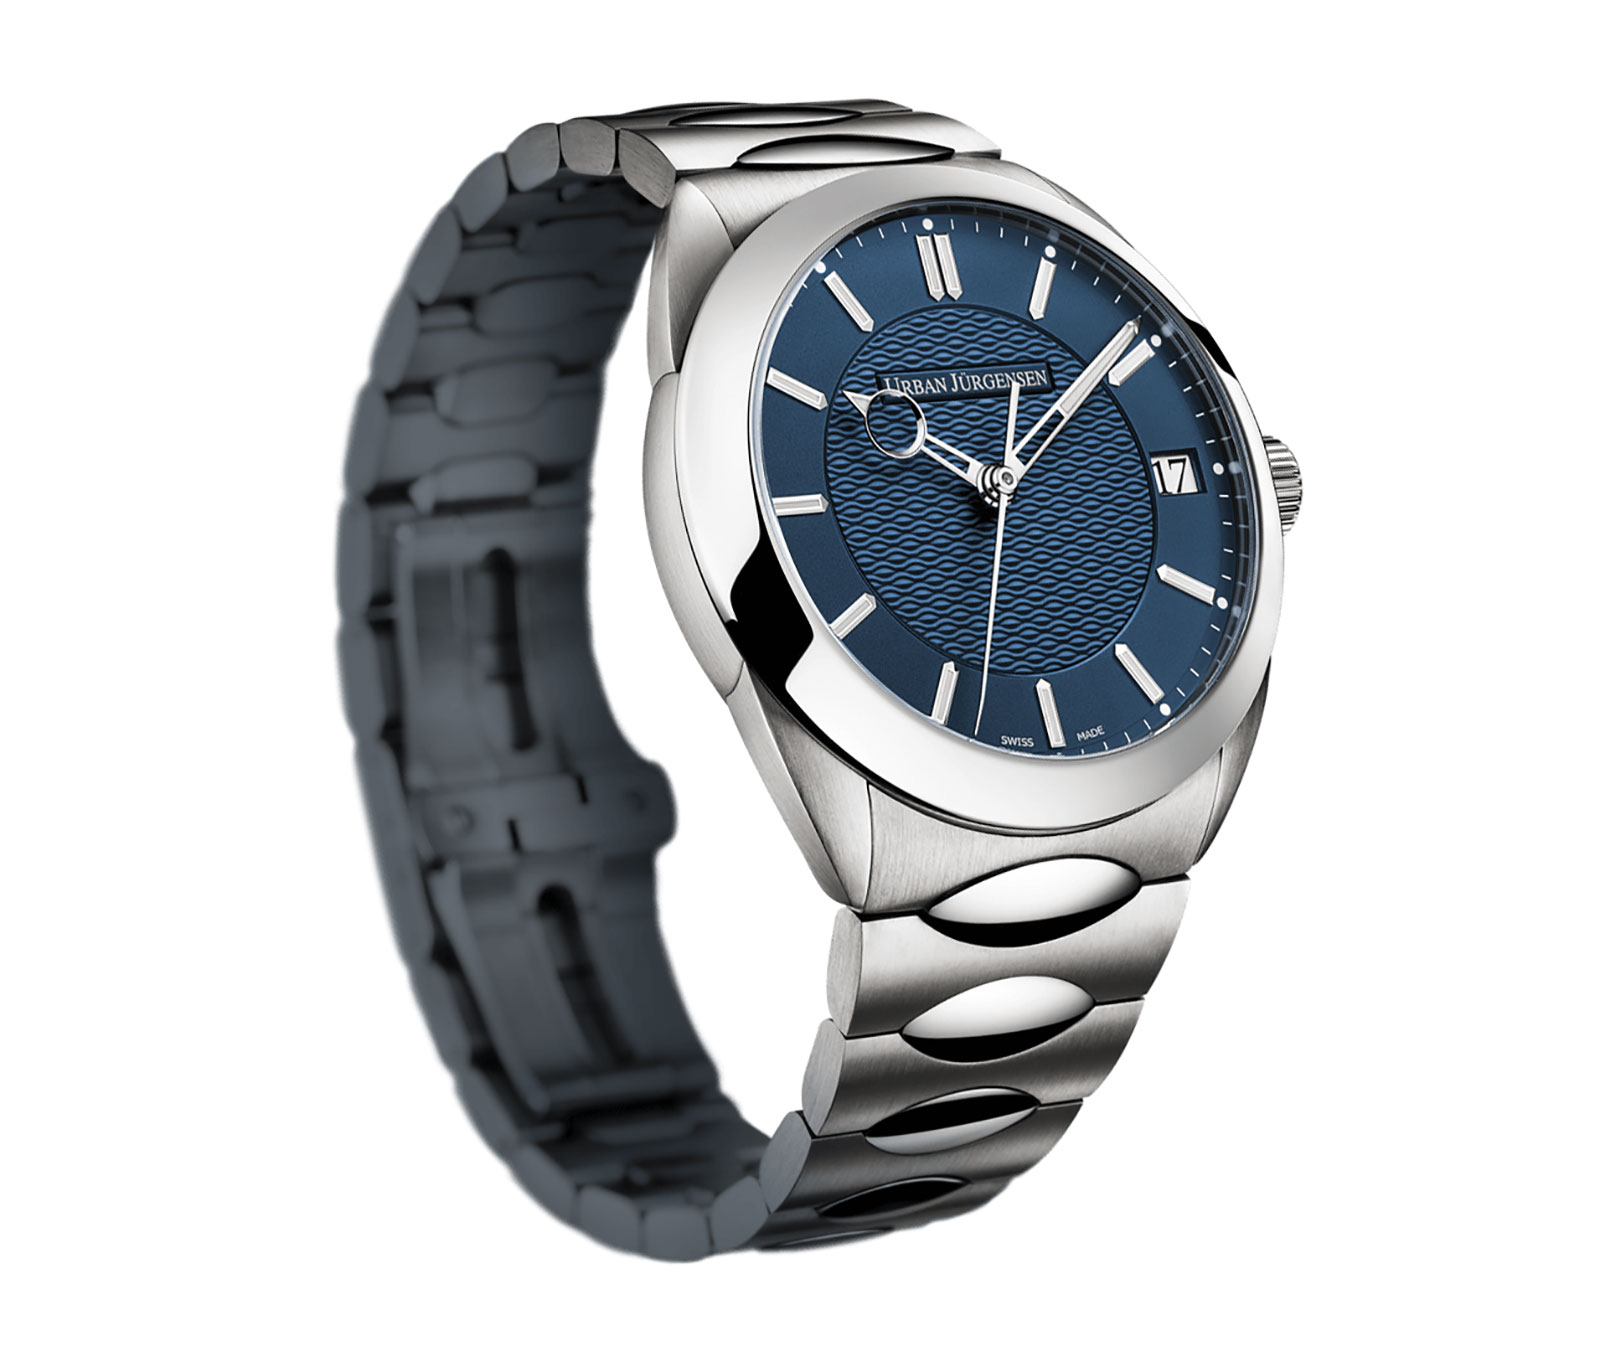 Urban Jürgensen One sports watch